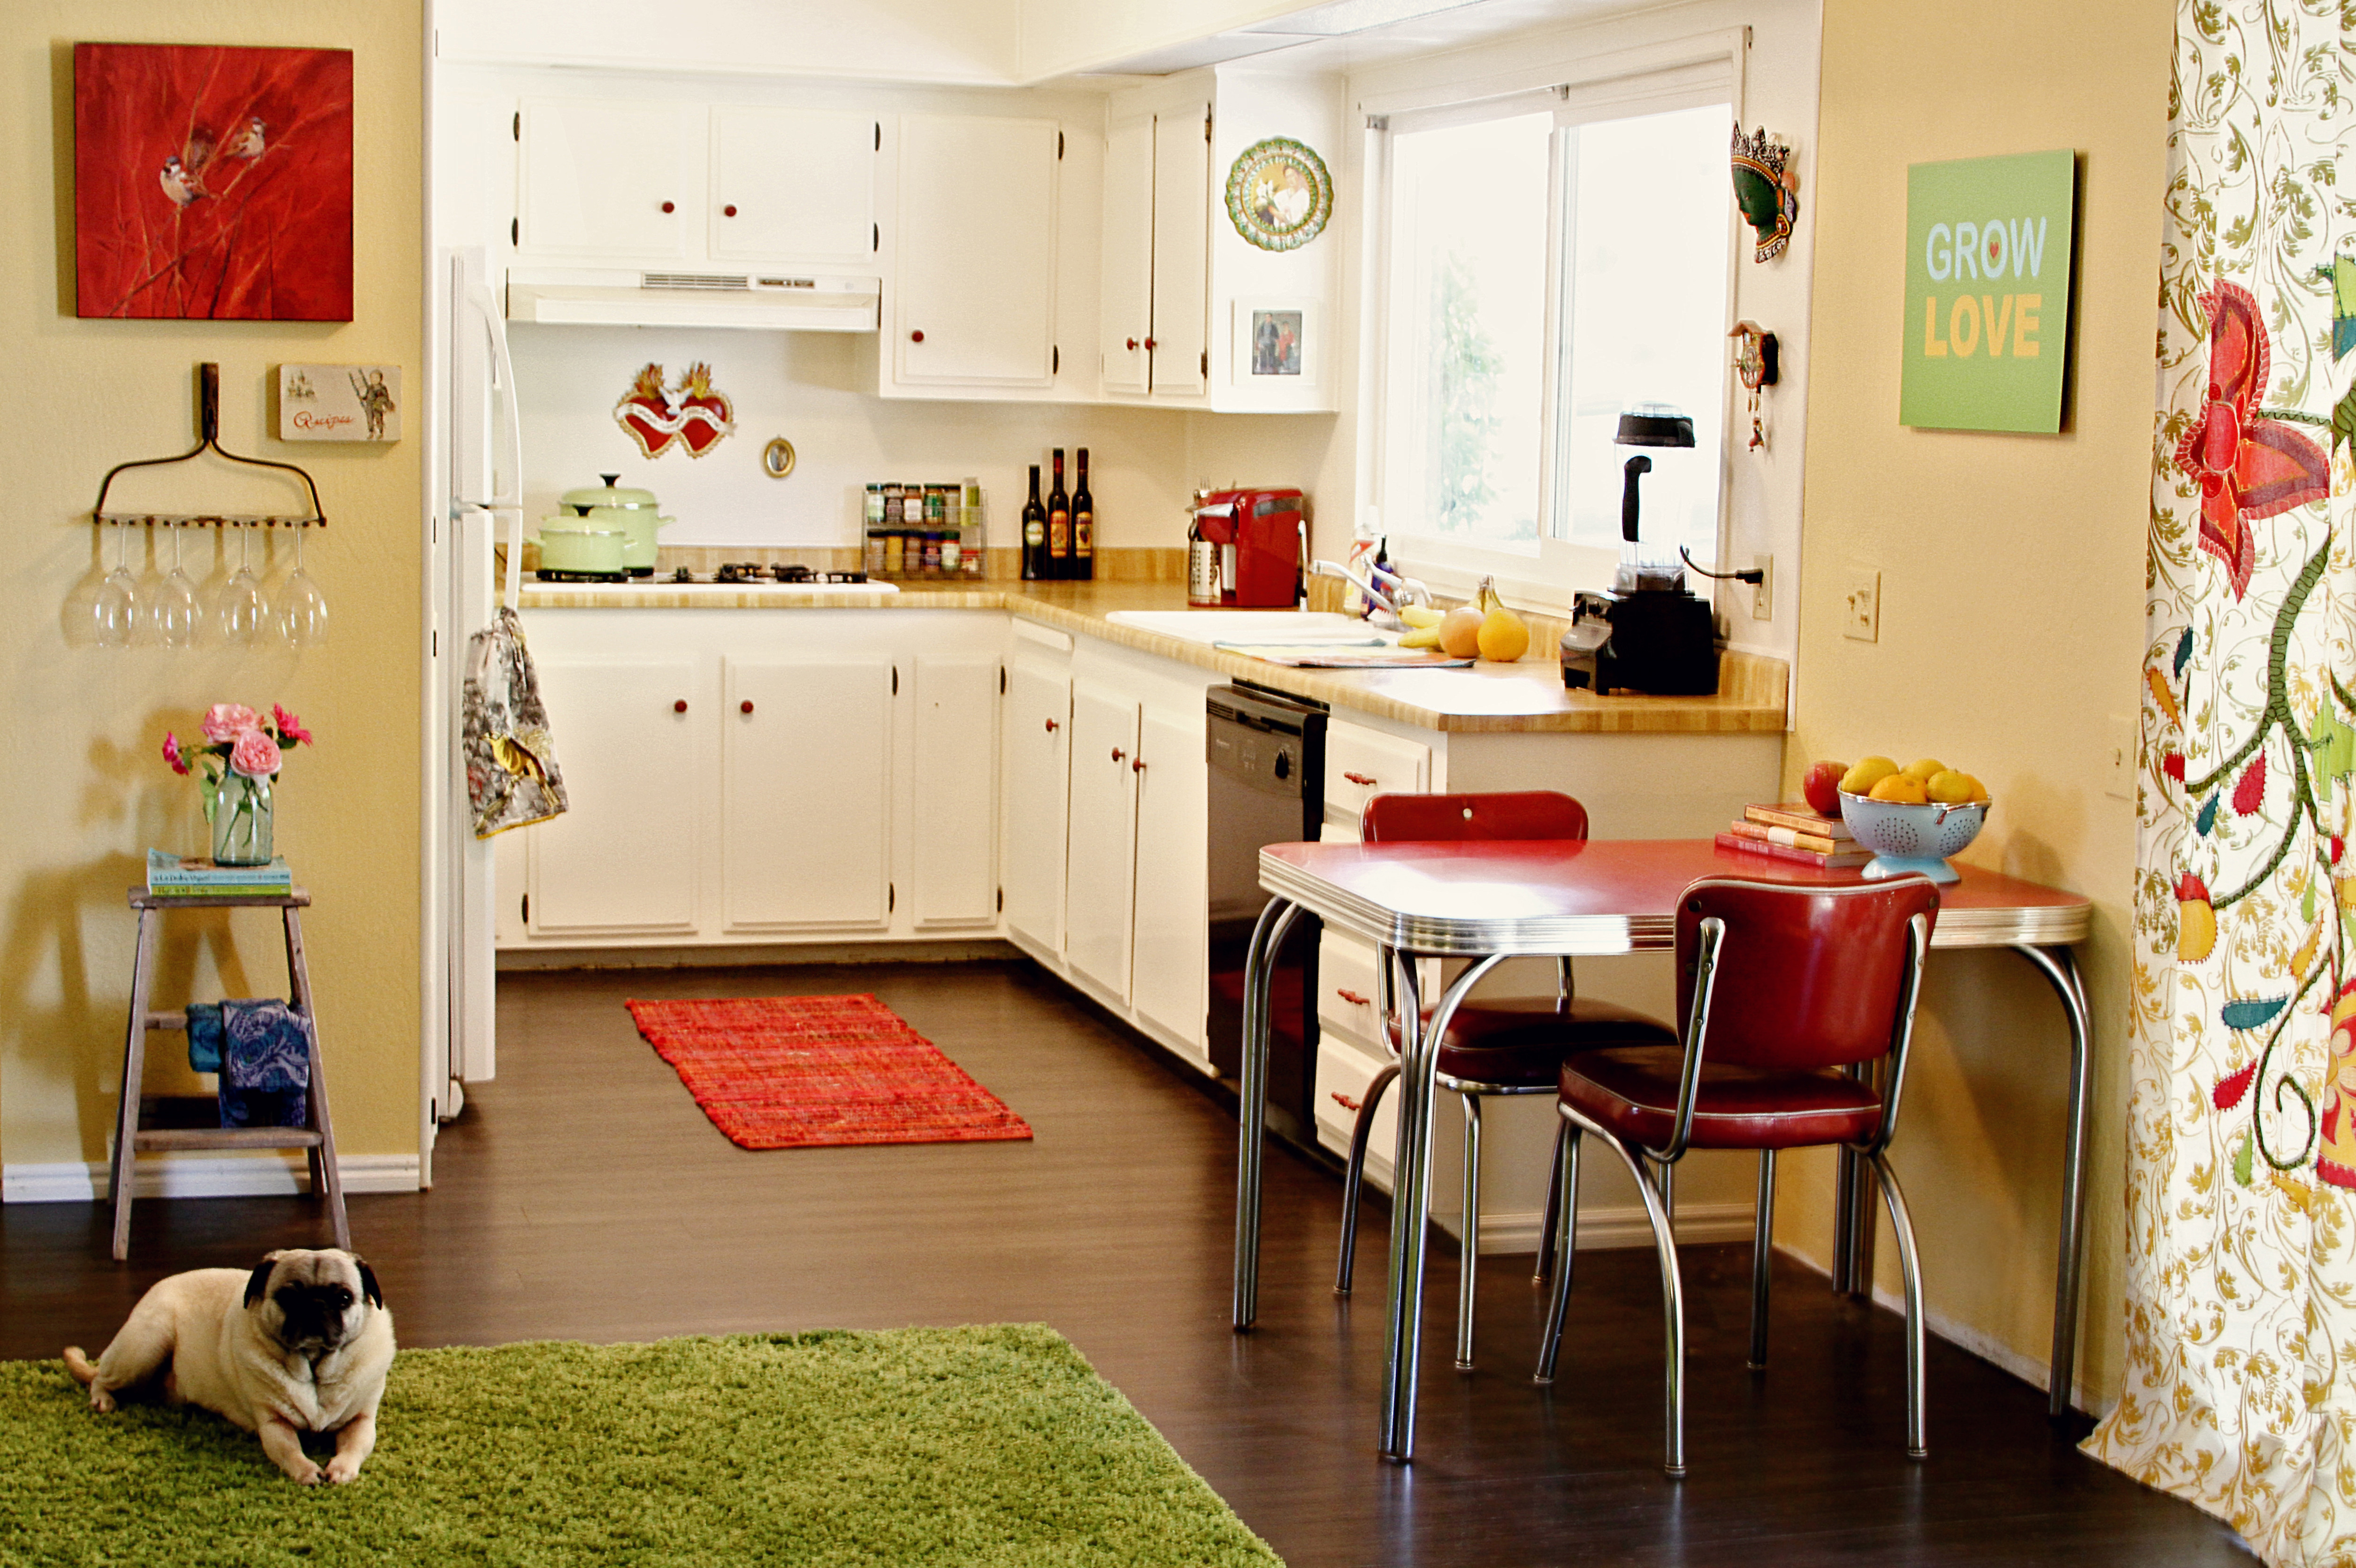 Best ideas about Kitchen Decor Accents . Save or Pin 10 Kitchen Decor Ideas for Your Mobile Home Rental Now.